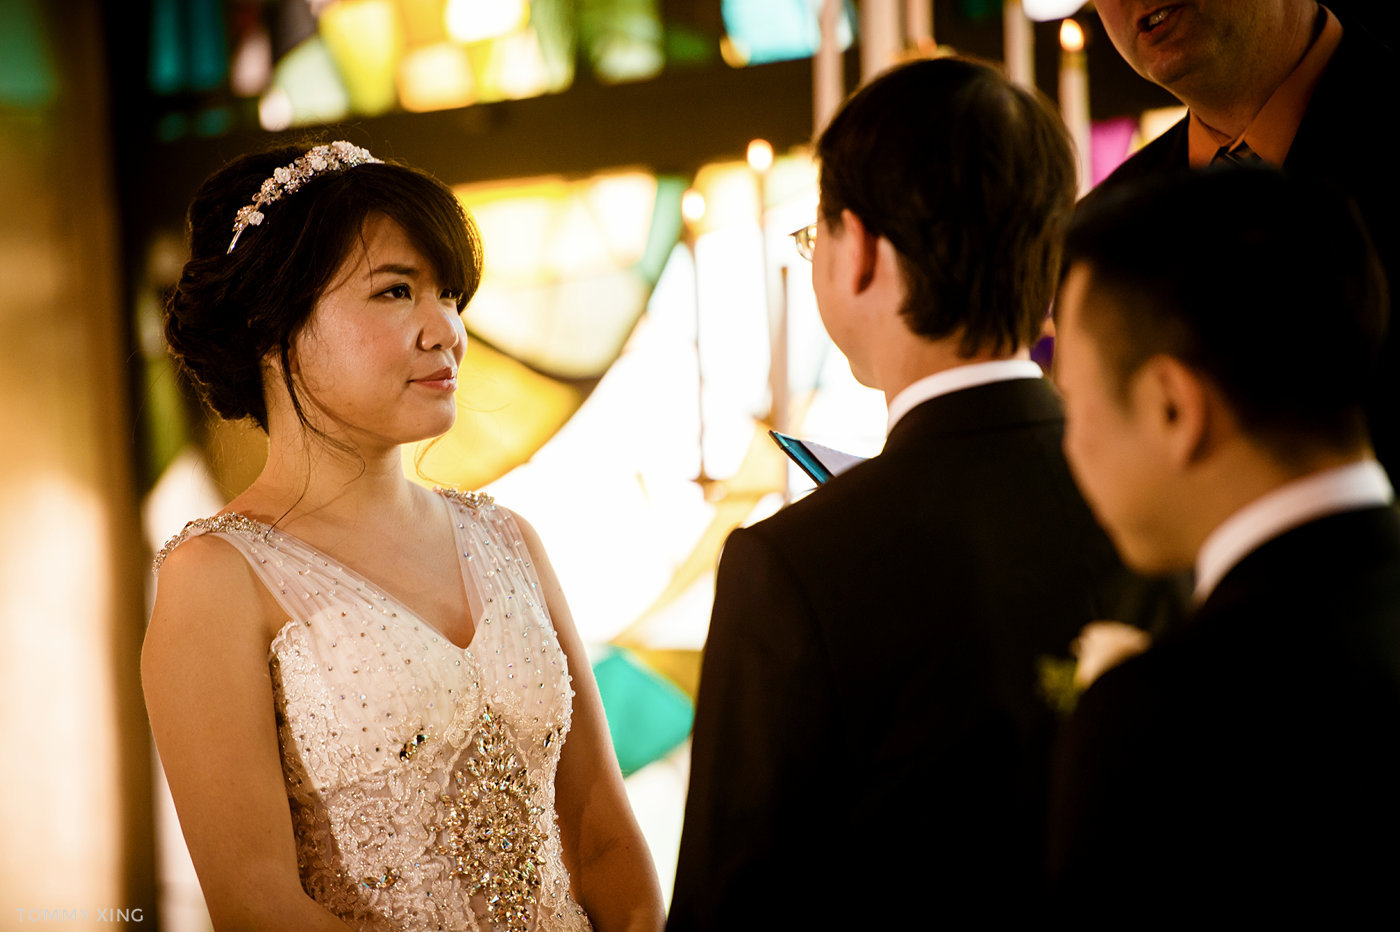 Qinglu Meng & Daozheng Chen Wedding Slideshow-122-E.JPG